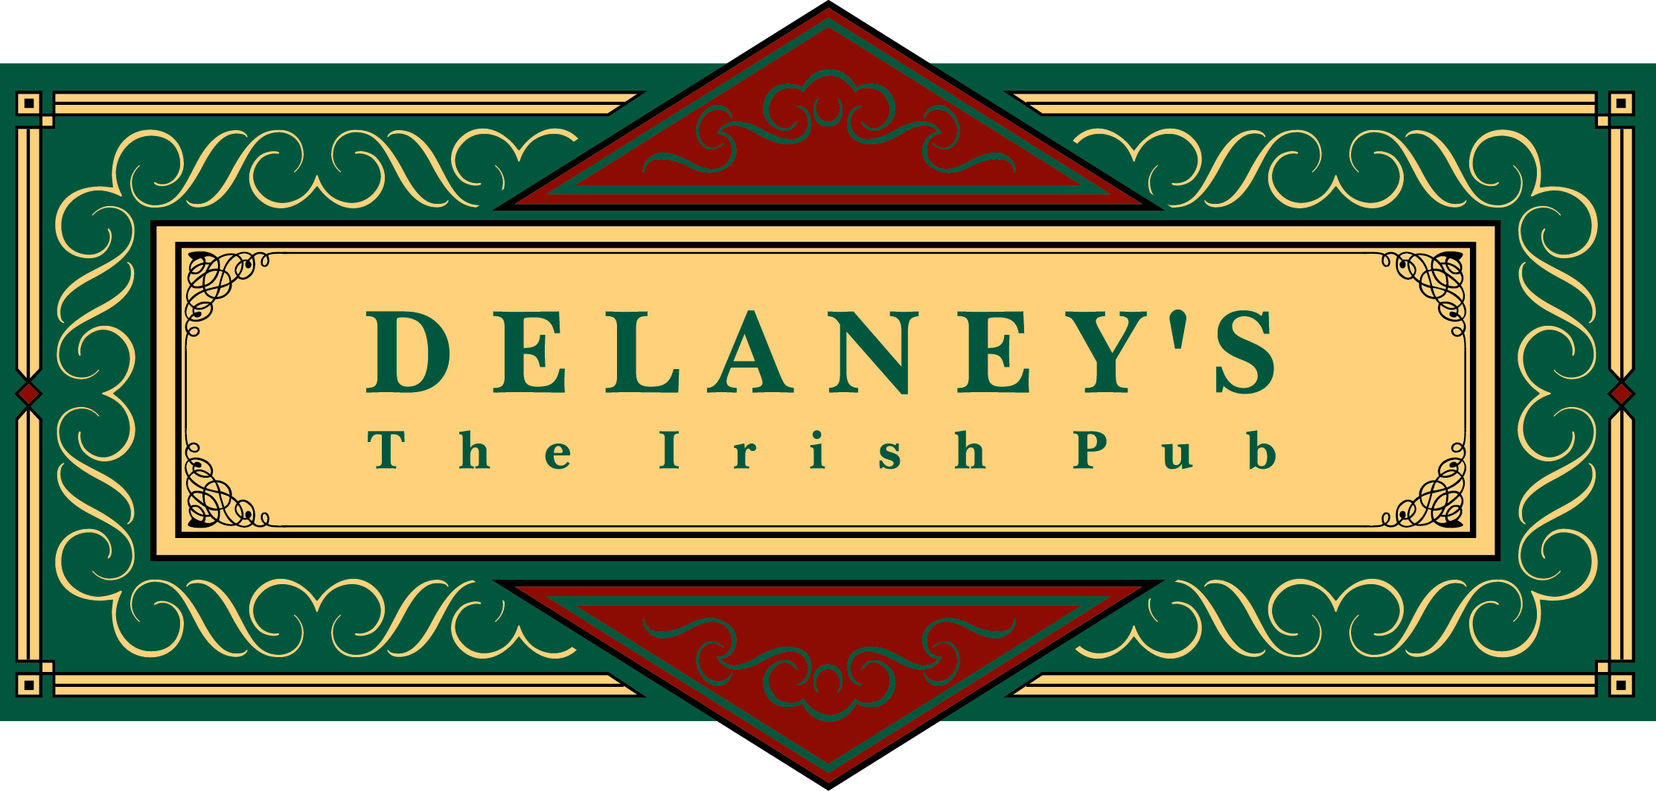 20% discount on food and beverage. Delaneys opened the first Irish Pub in Hong Kong back in 1994 and therefore poured the very first pints of porter in the territory too. Since then Delaney's has become a staple for the best pint in Hong Kong as well as a pioneer for Whiskey and Craft Beers.